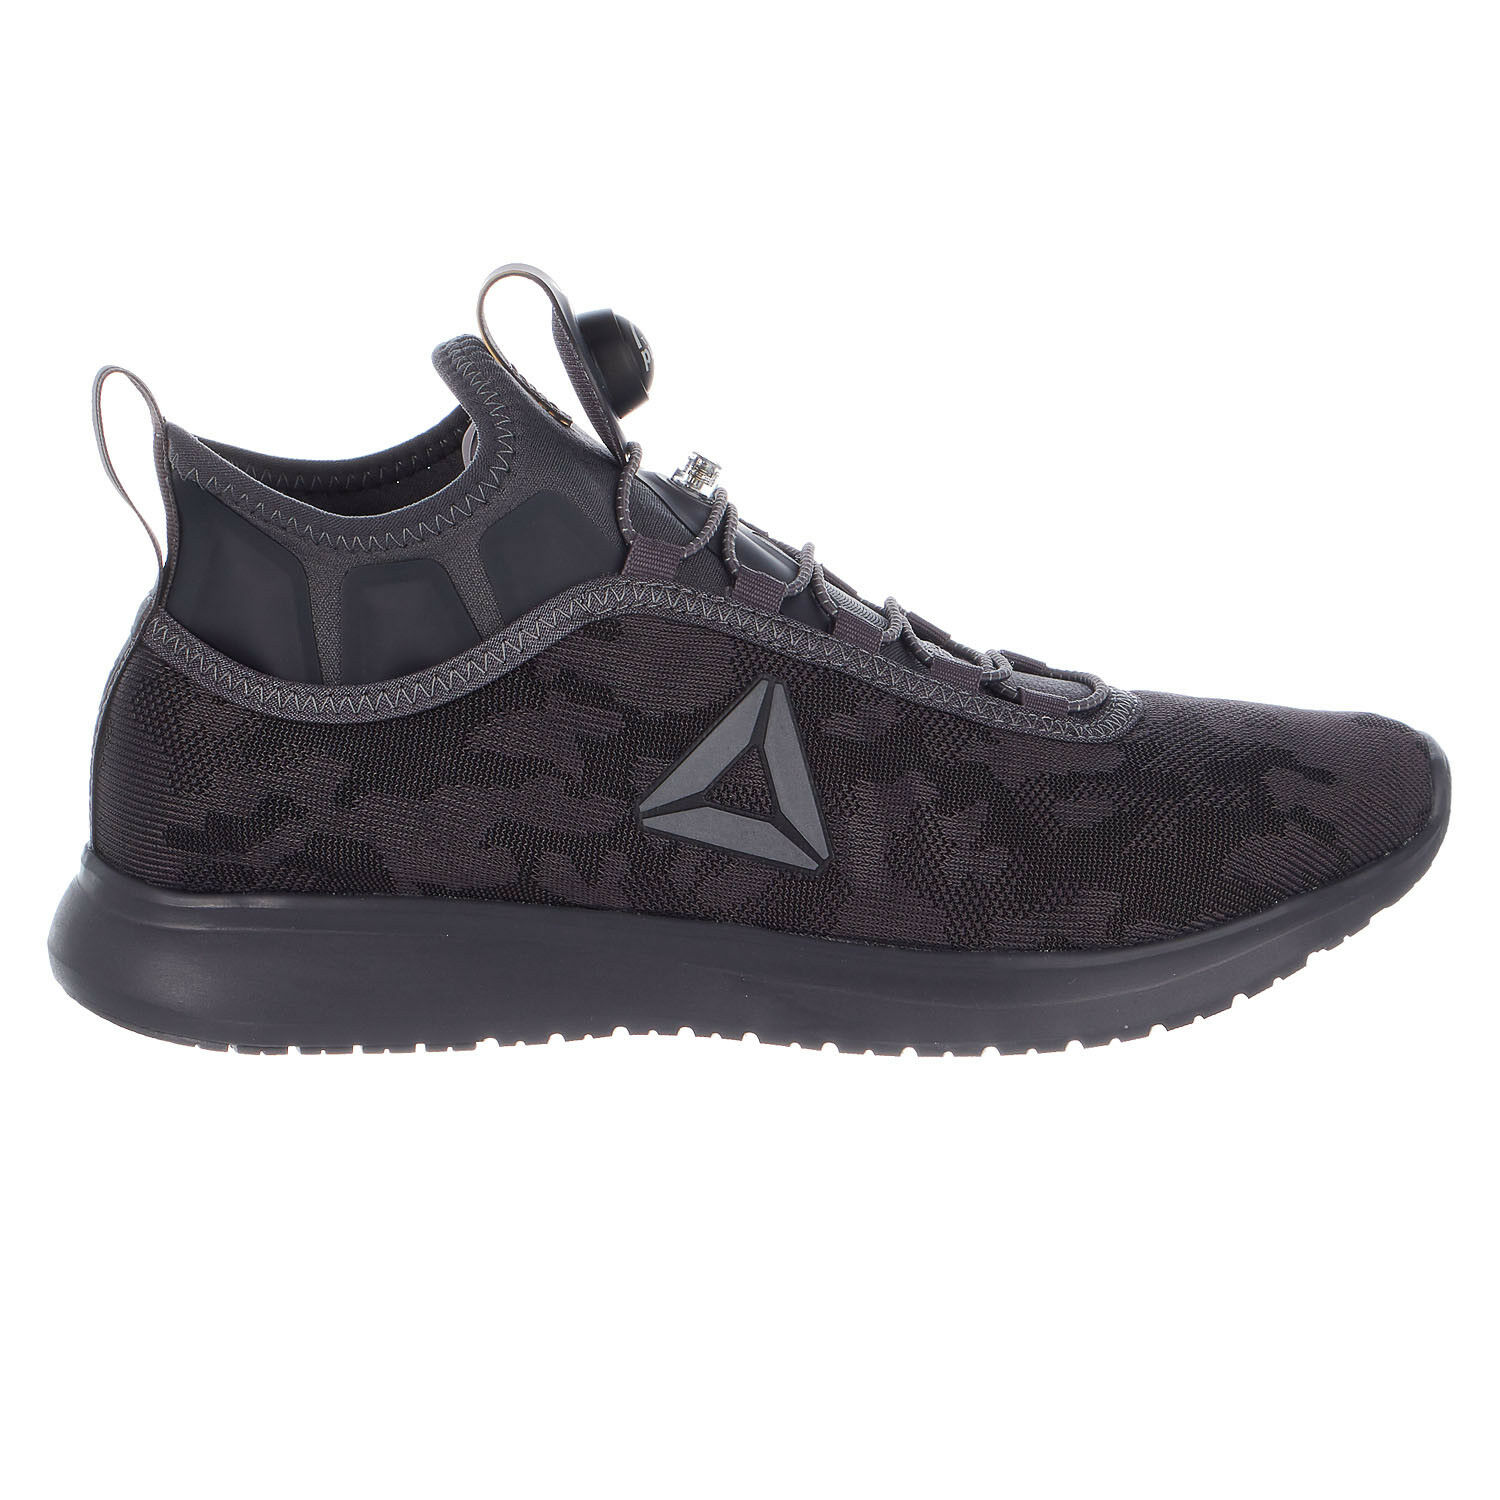 Reebok Pump Plus Camo Running shoes  - Mens